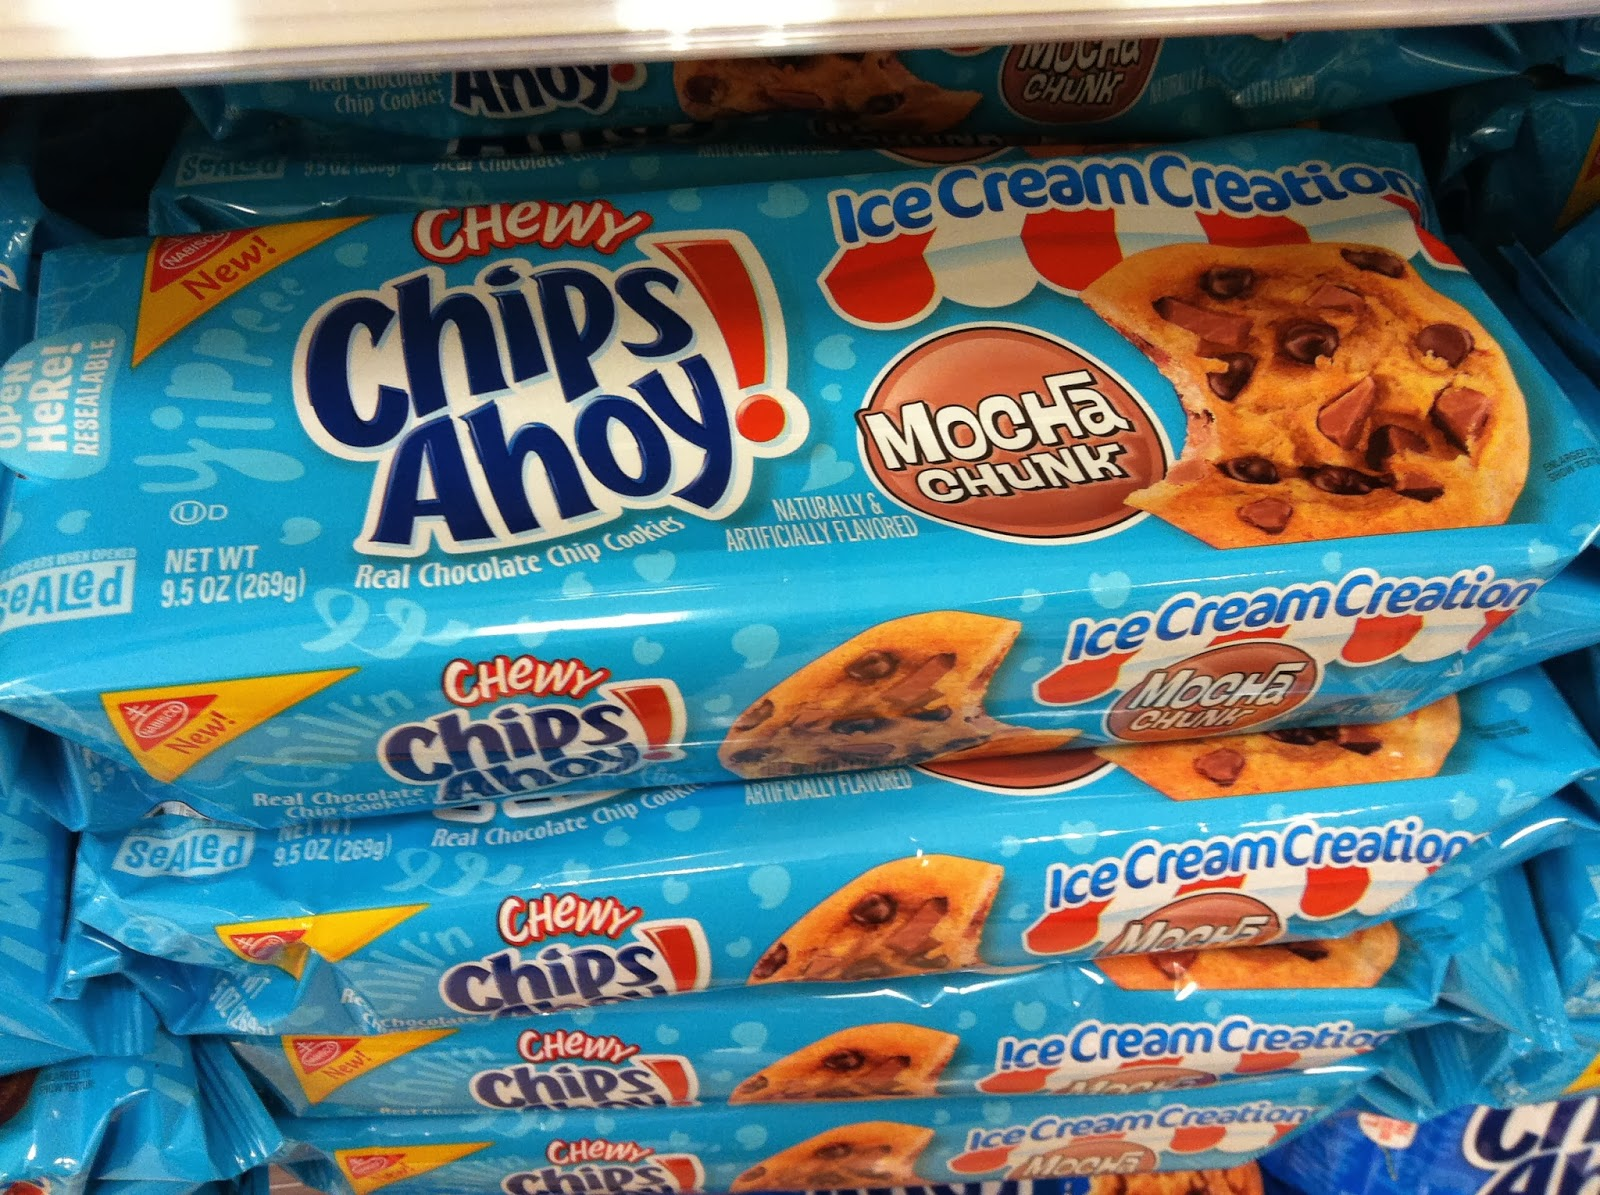 Chips Ahoy Ice Cream Creations